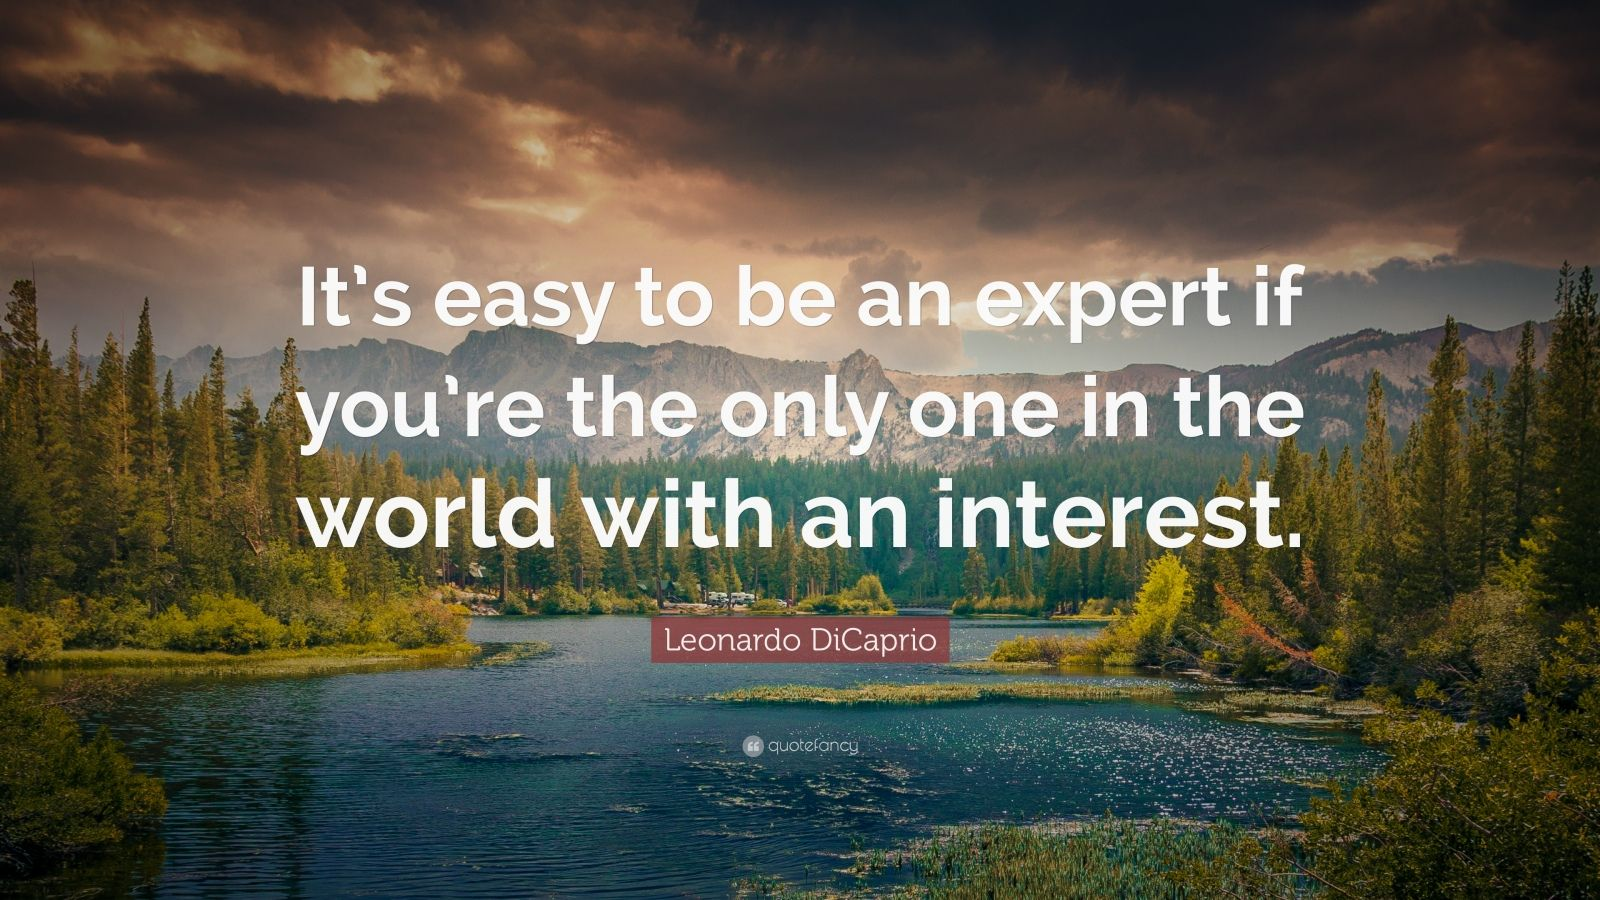 """Leonardo DiCaprio Quote: """"It's easy to be an expert if you're the only one in the world with an interest."""""""